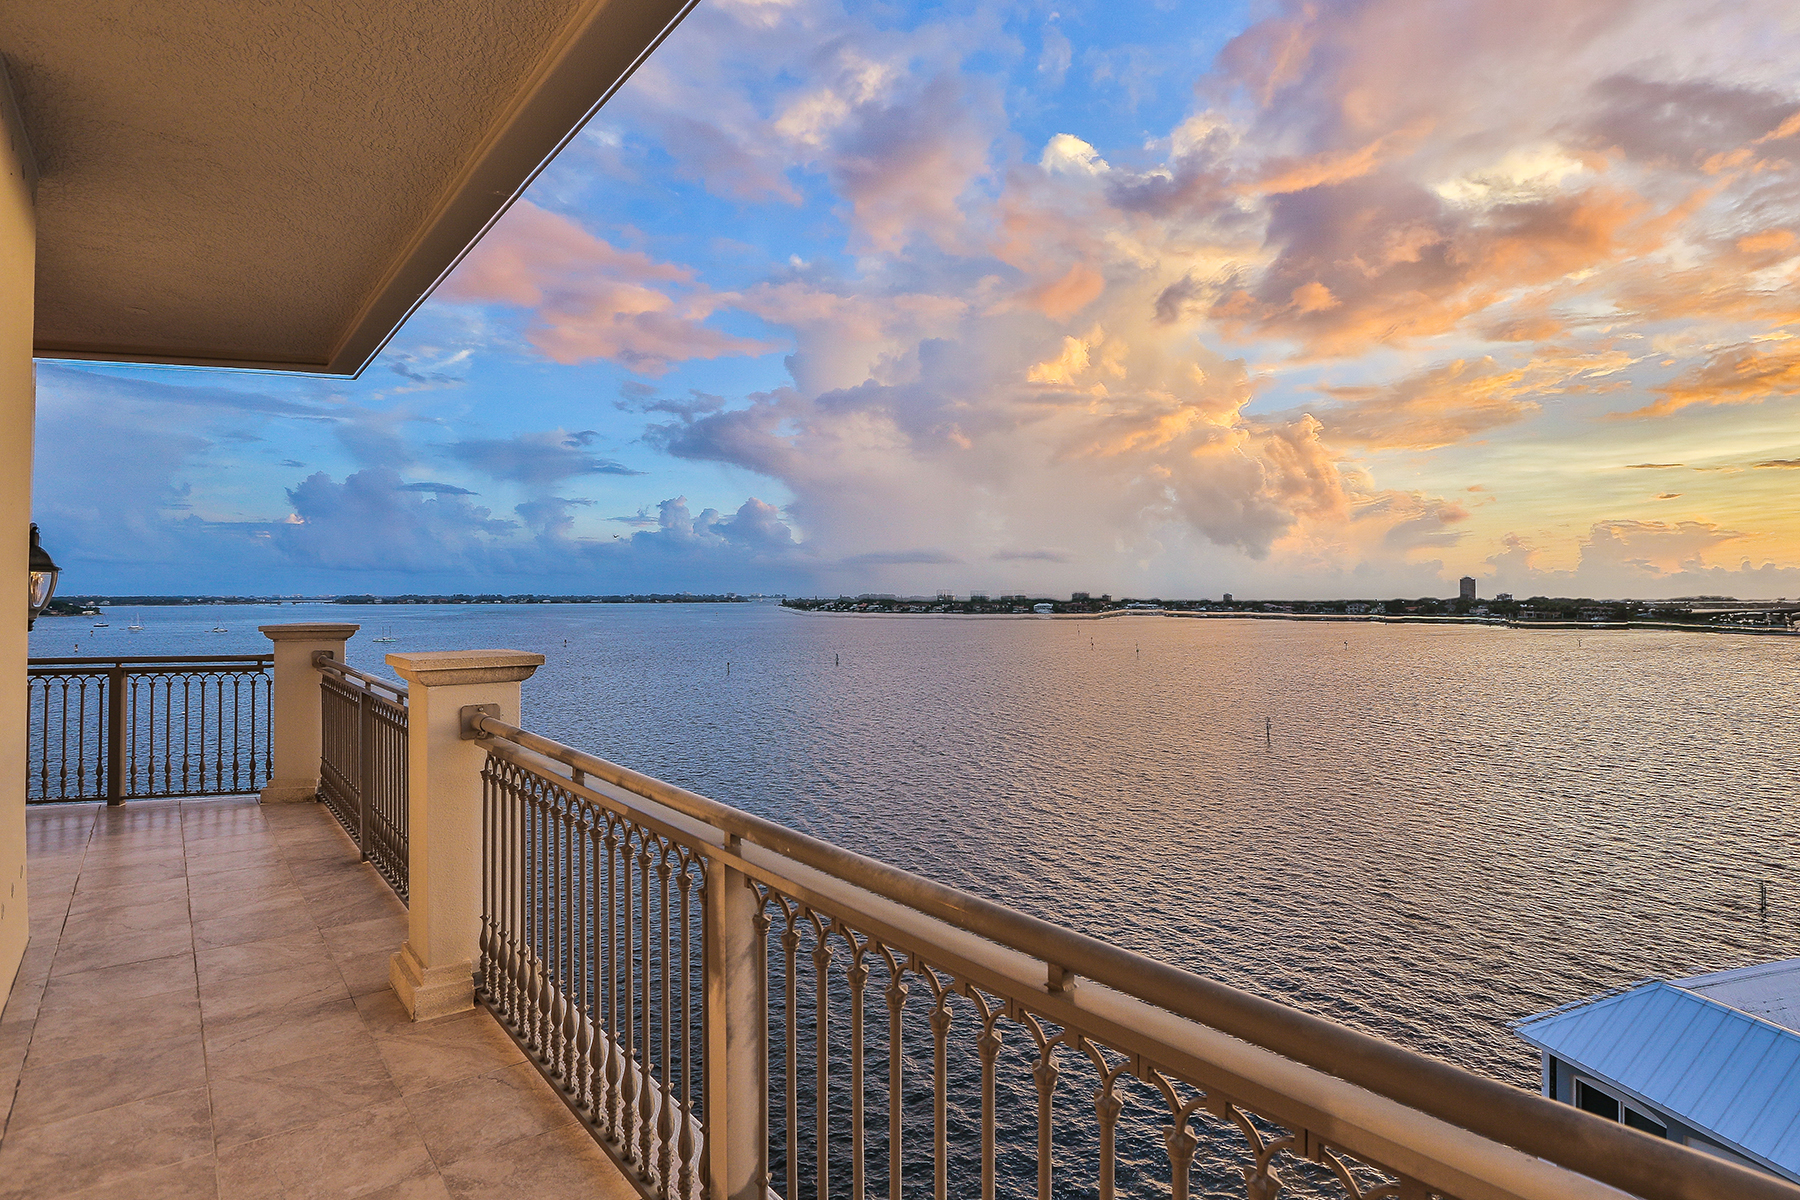 Condominium for Sale at GRANDE RIVIERA 420 Golden Gate Pt 800PH Sarasota, Florida 34236 United States